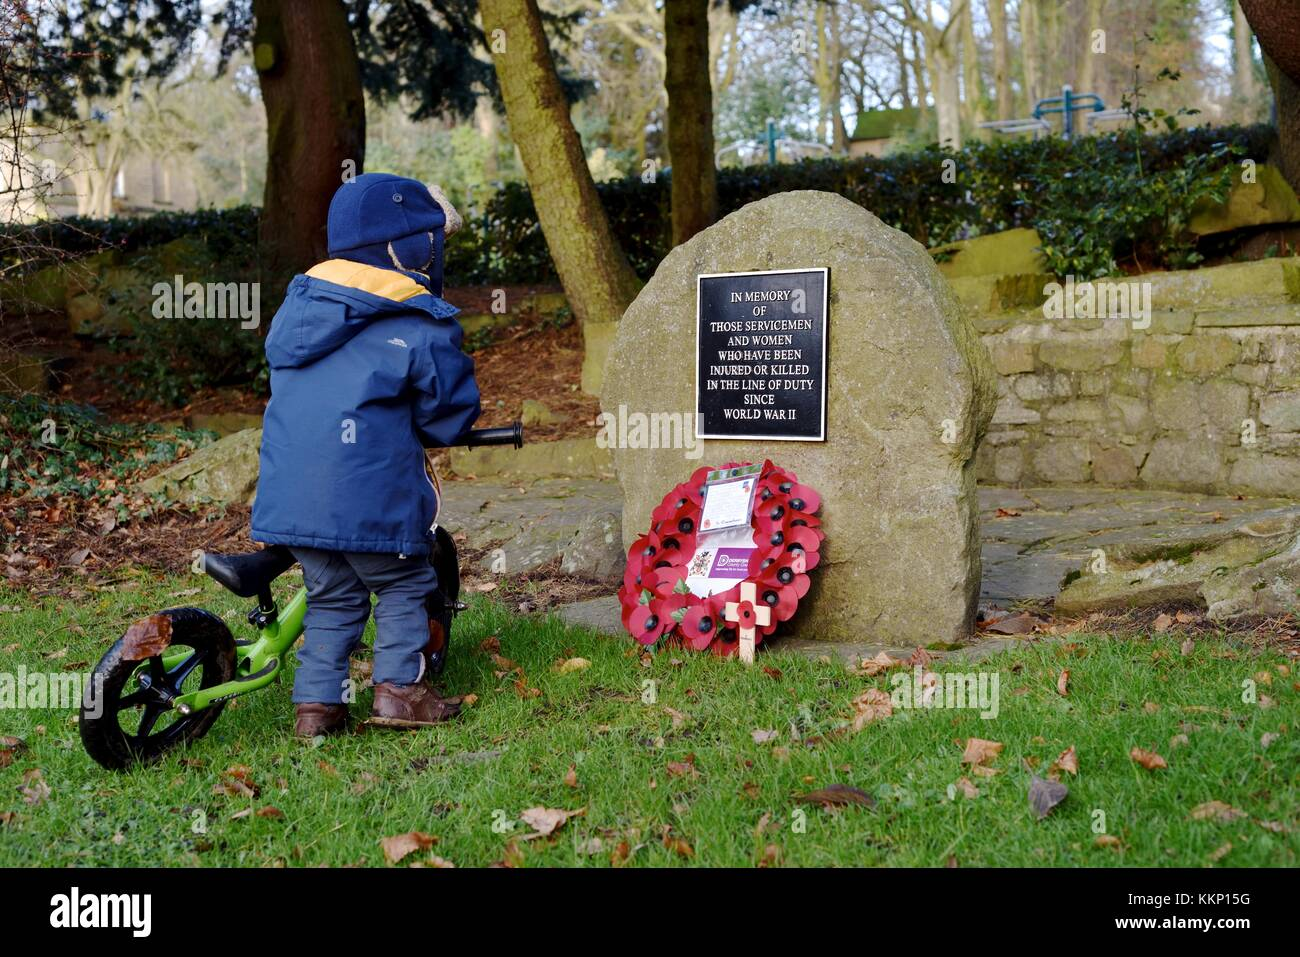 A young boy looks a wreath placed on a war memorial stone in High Lea Park, New Mills, Derbyshire. - Stock Image